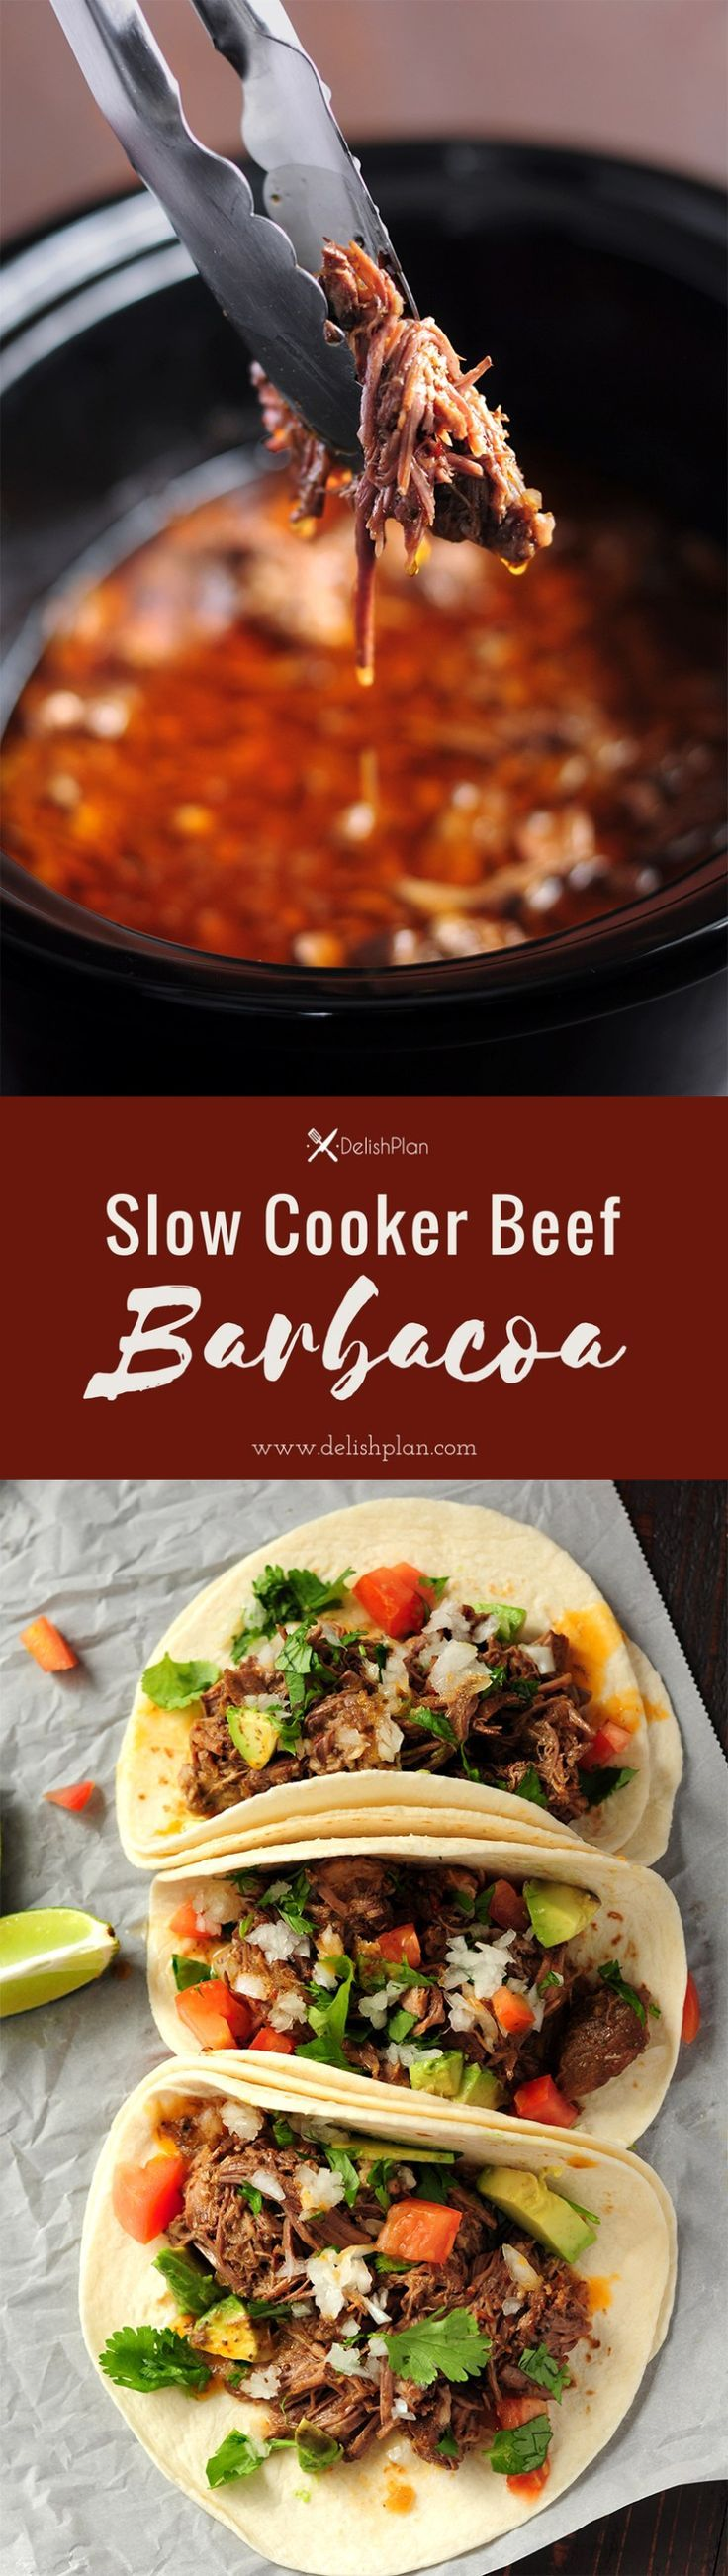 Extremely tender beef barbacoa slow-cooked in a super savory sauce. This recipe only takes 5 mins of hands-on time. Enjoy barbacoa tacos anytime! Want more slow cooker recipes like this one? There are tons in our slow cooker cookbook. Click the image to sign up and get notified as soon as the book is released.